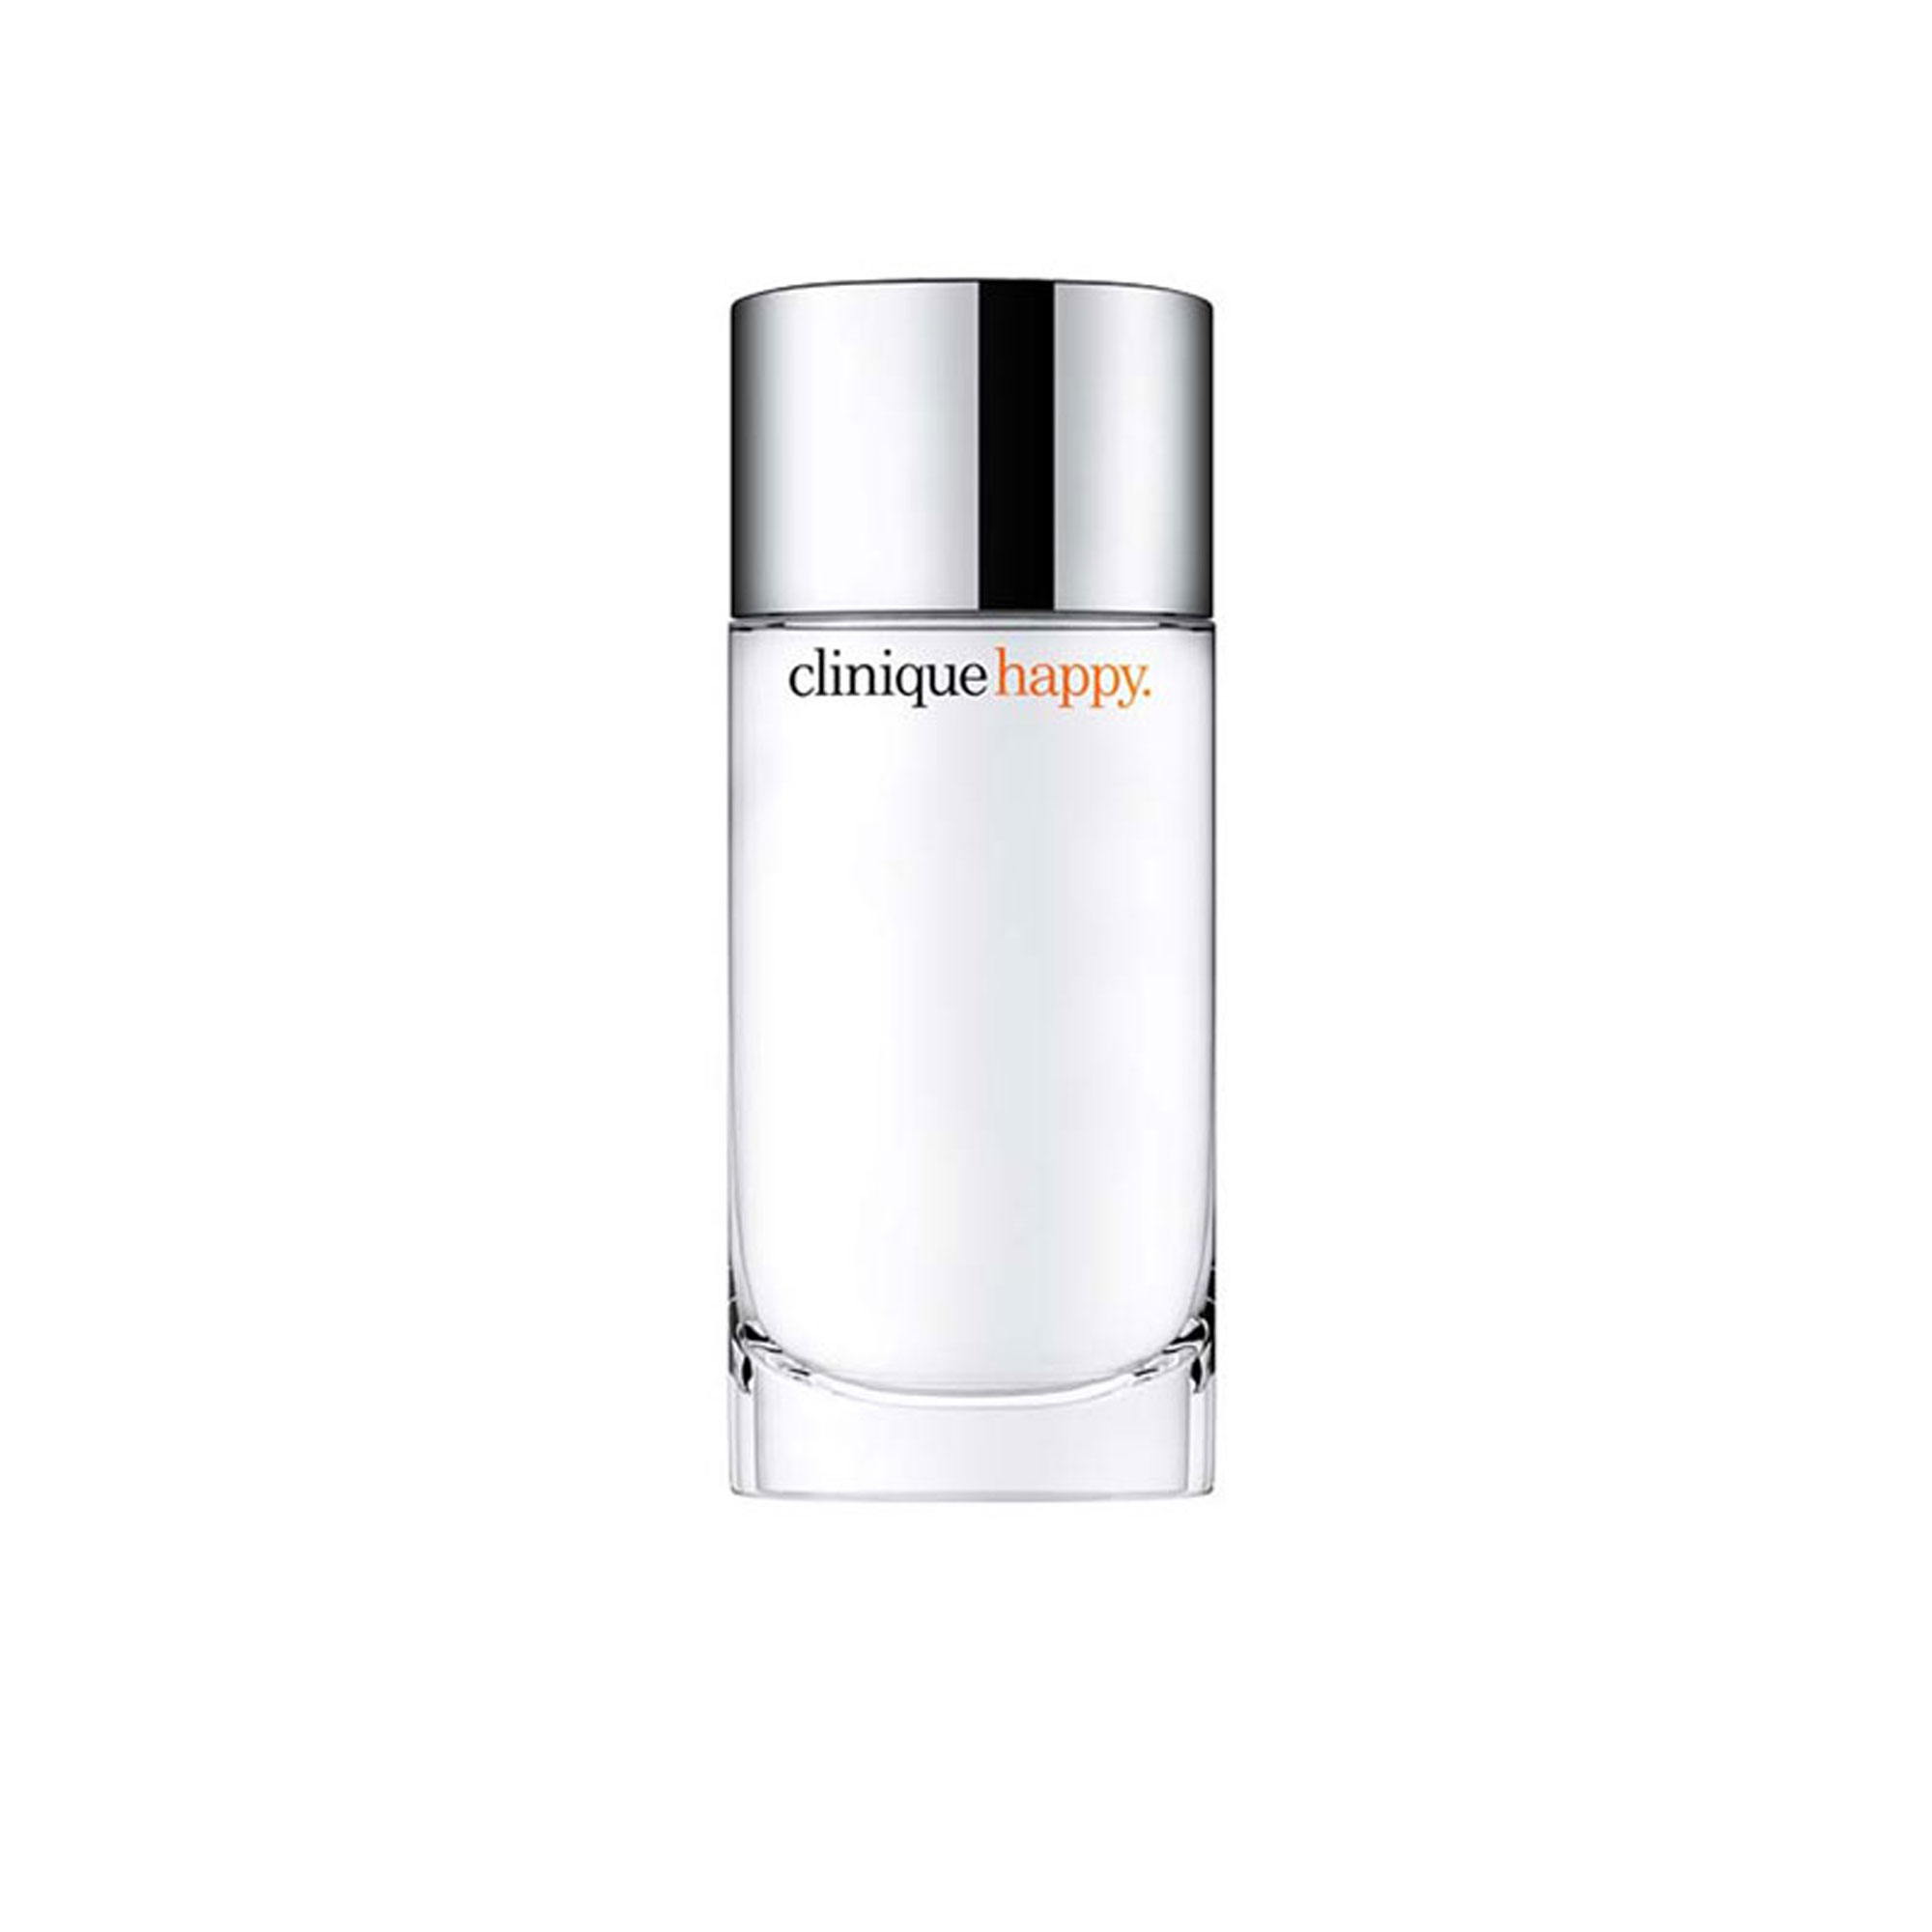 Clinique Happy women's perfume classic